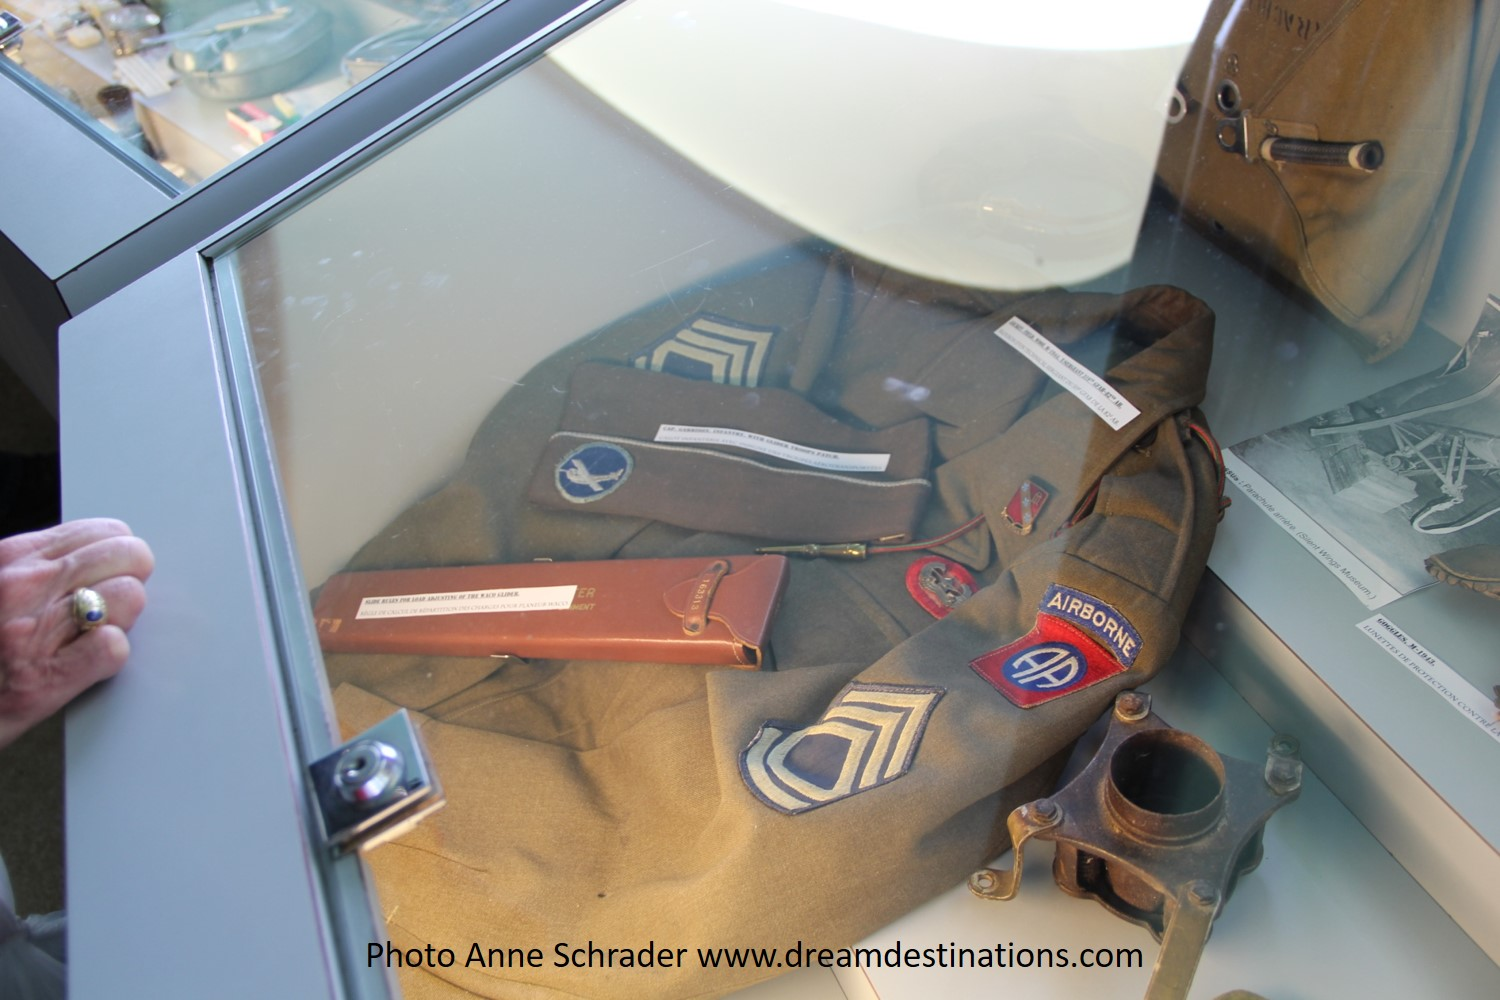 Sargeant's jacket and slide rule used during the glider operations displayed in the Airborne Museum, Ste. Mere Eglise